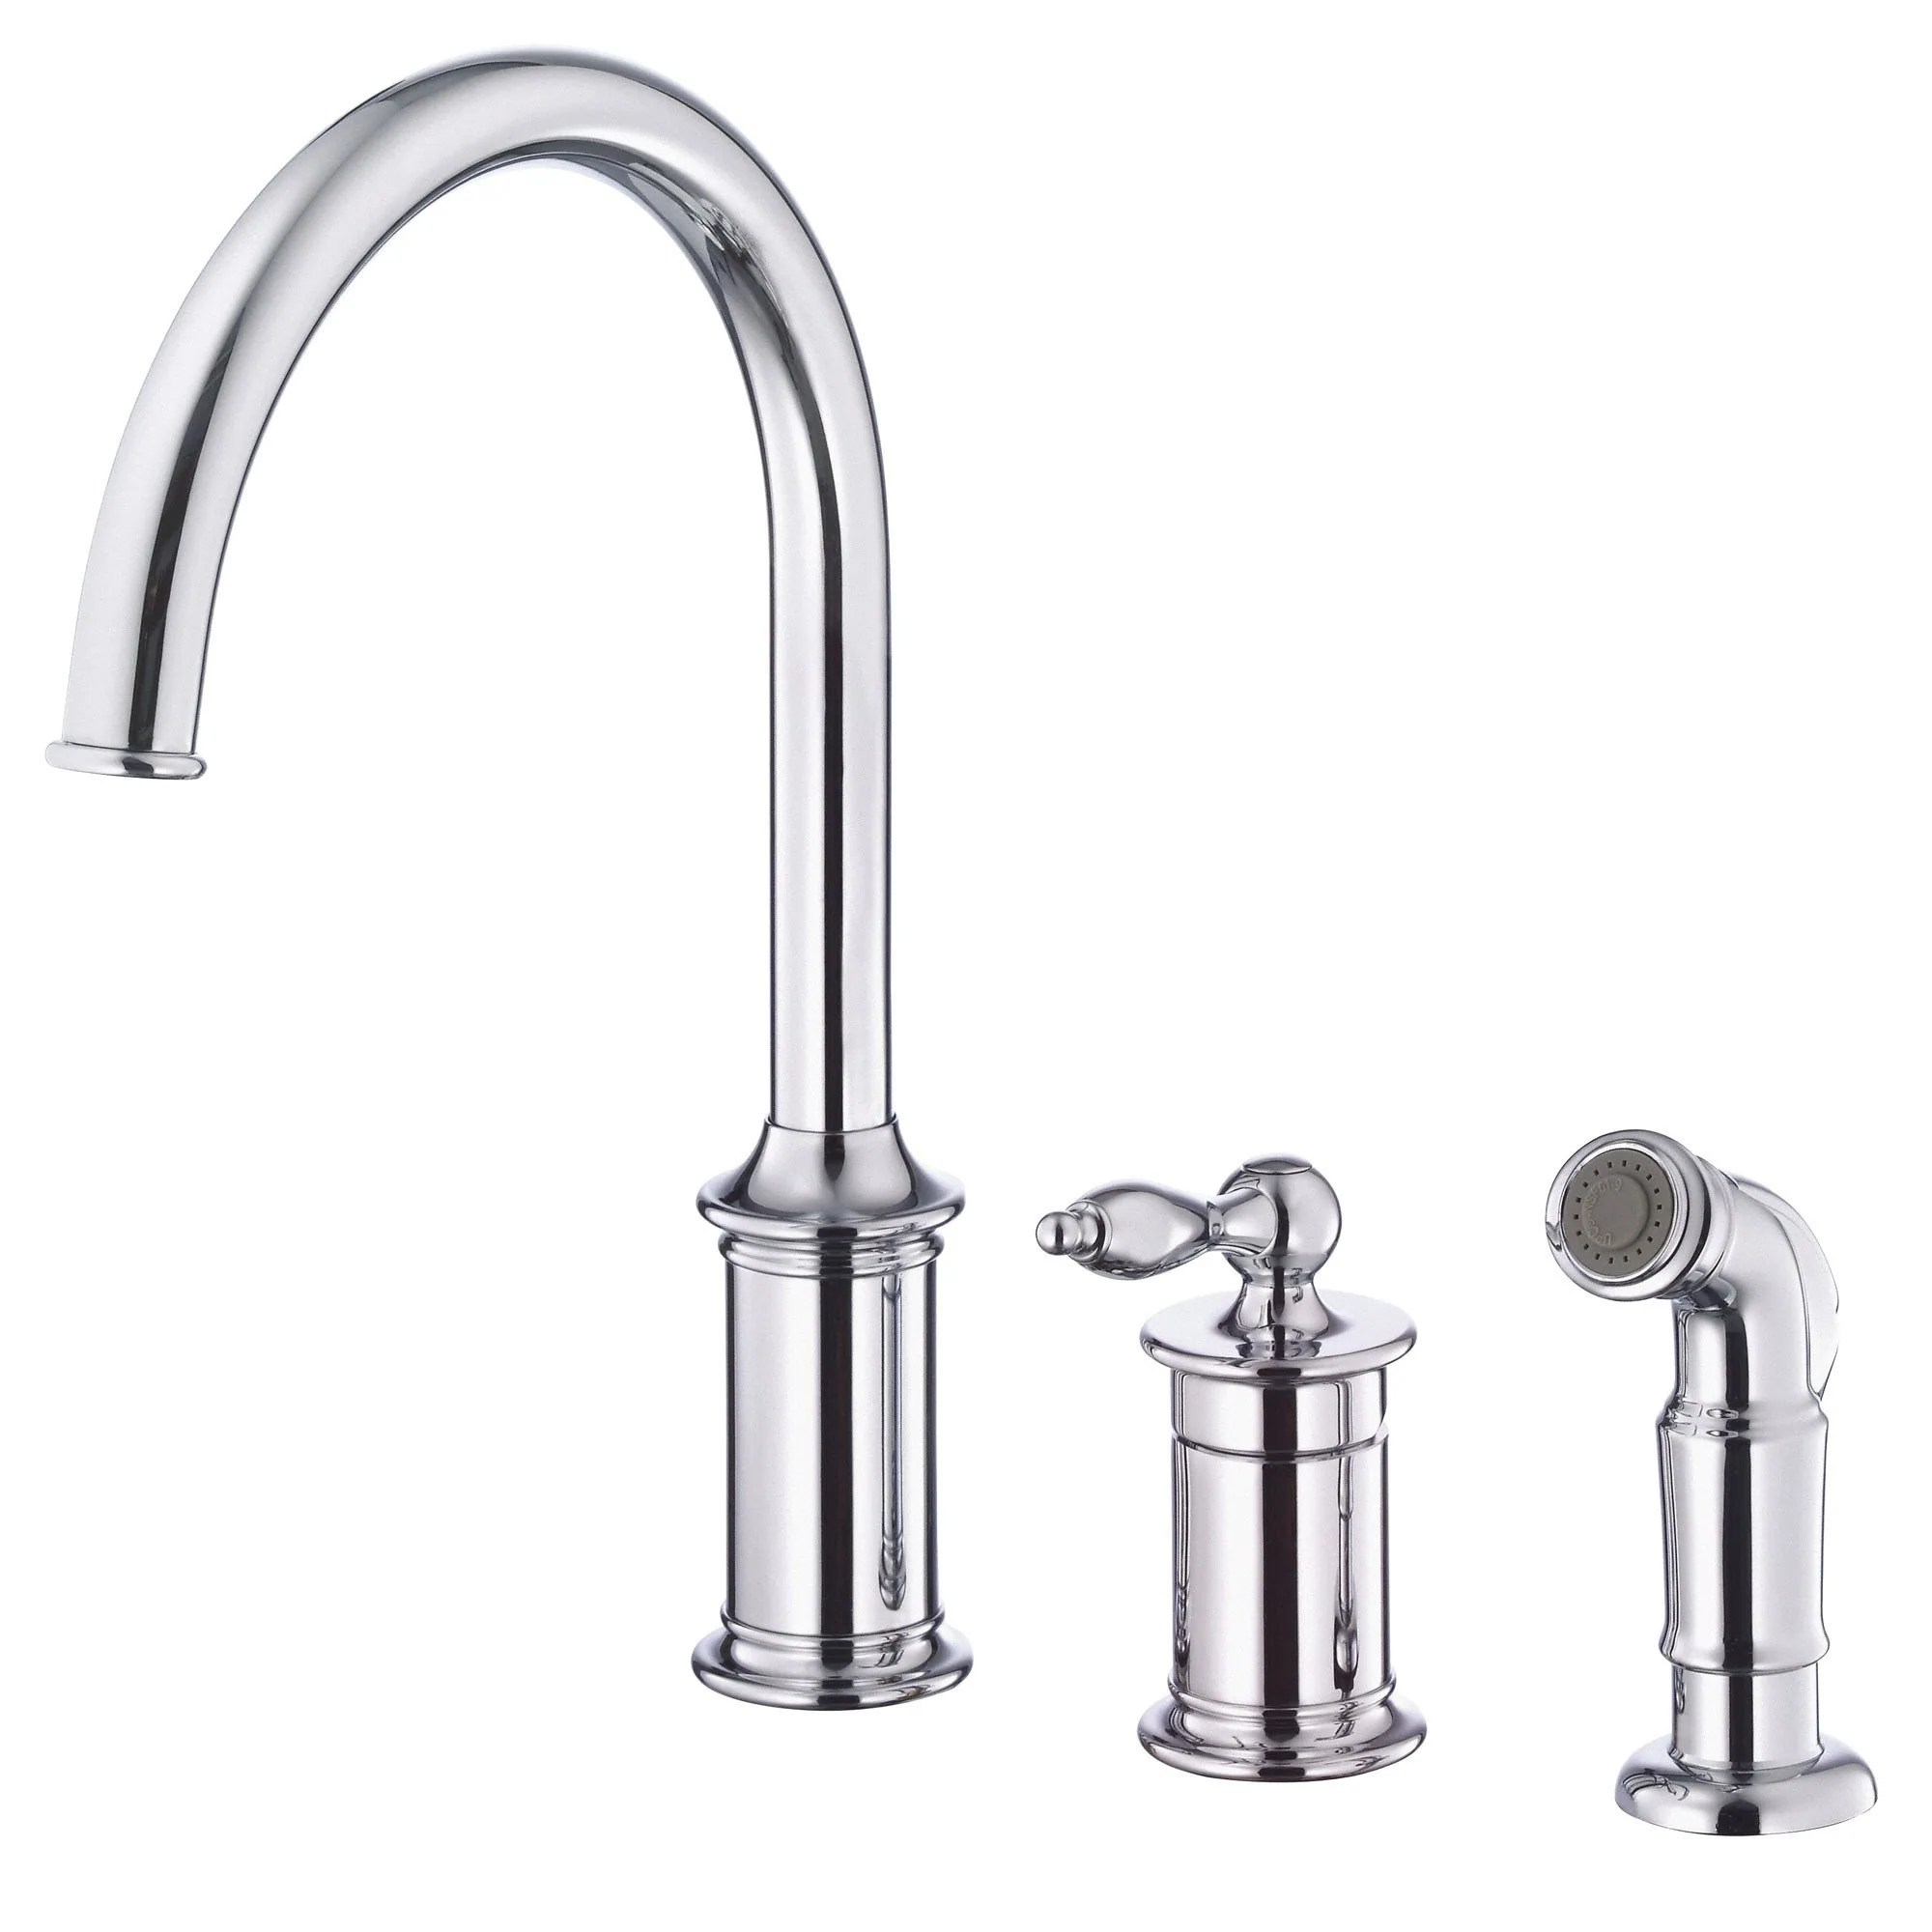 danze prince chrome single handle 3 hole widespread kitchen faucet with sprayer widespread kitchen faucet Danze Prince Chrome Single Handle 3 Hole Widespread Kitchen Faucet with Sprayer